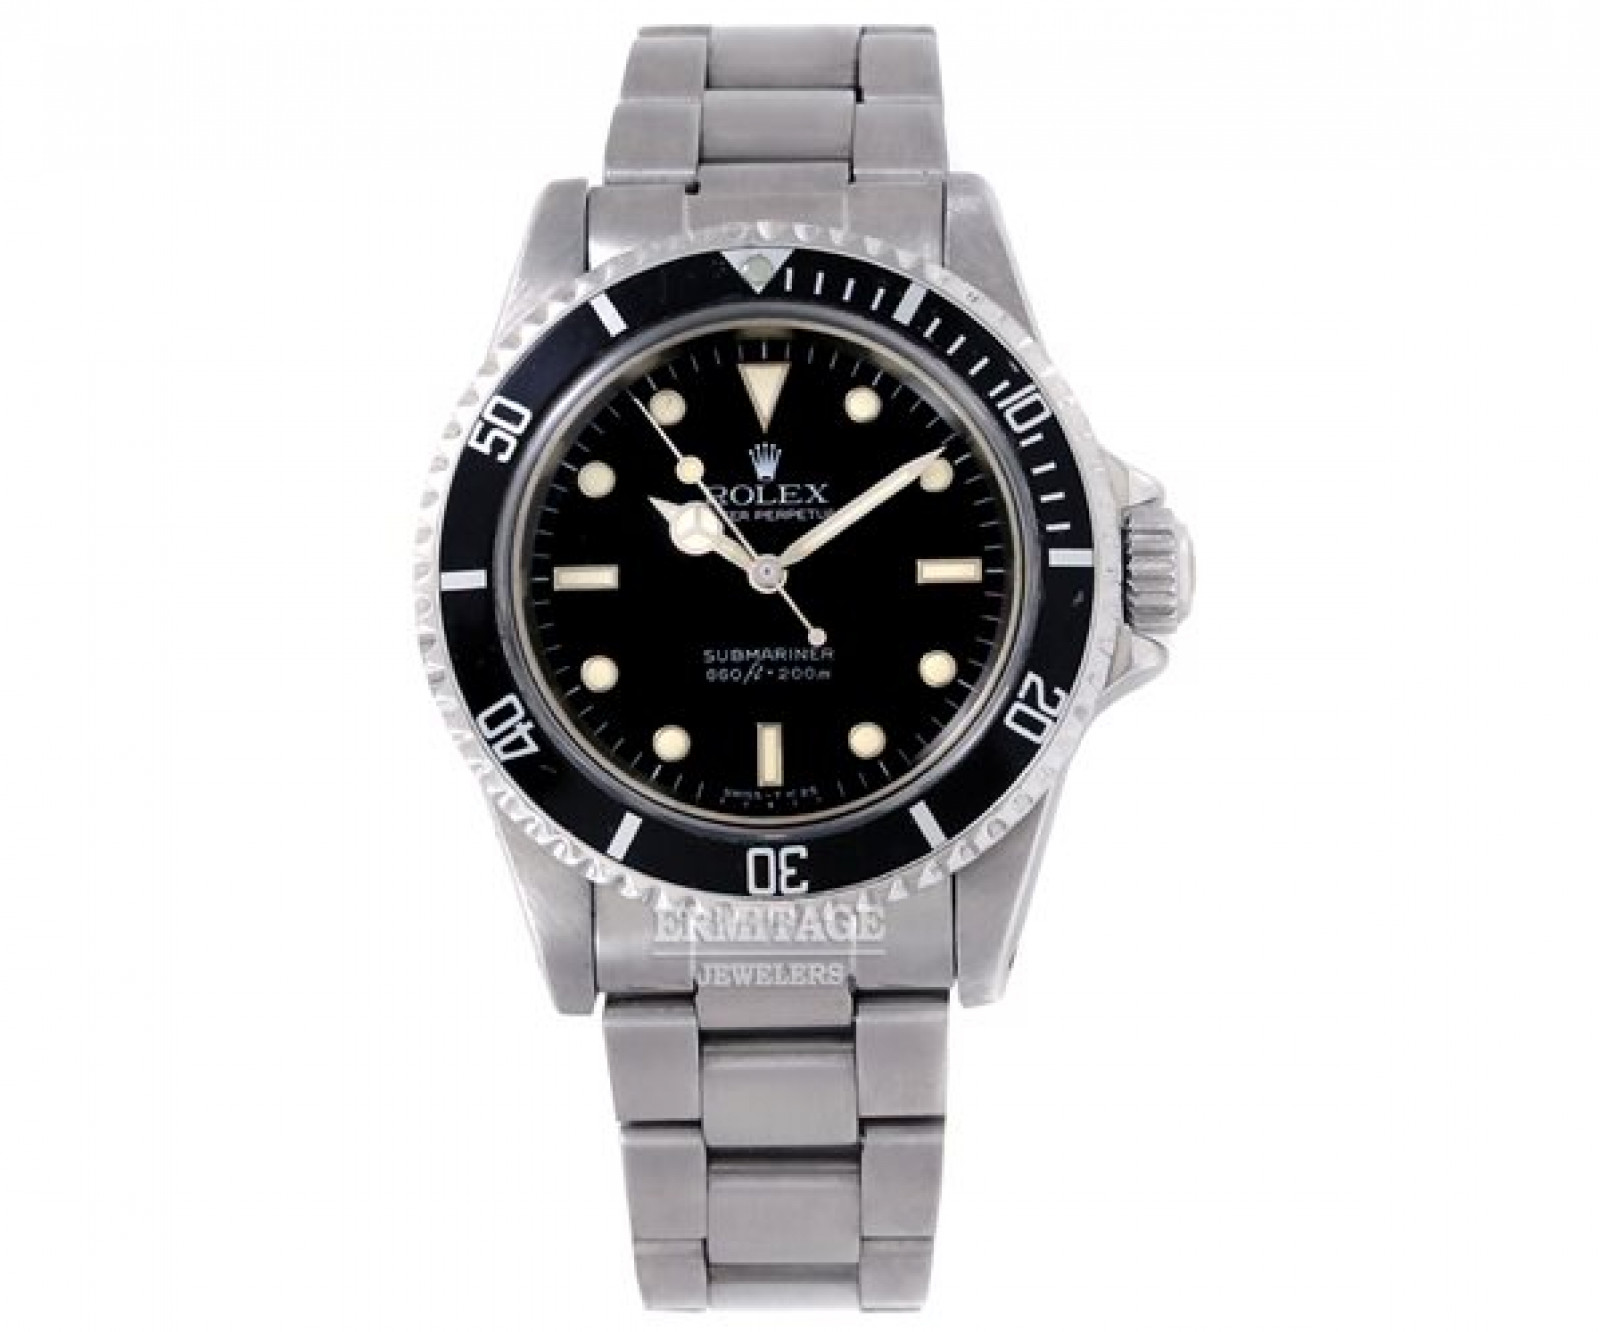 Vintage Rolex Submariner 5513 Steel with Black Dial